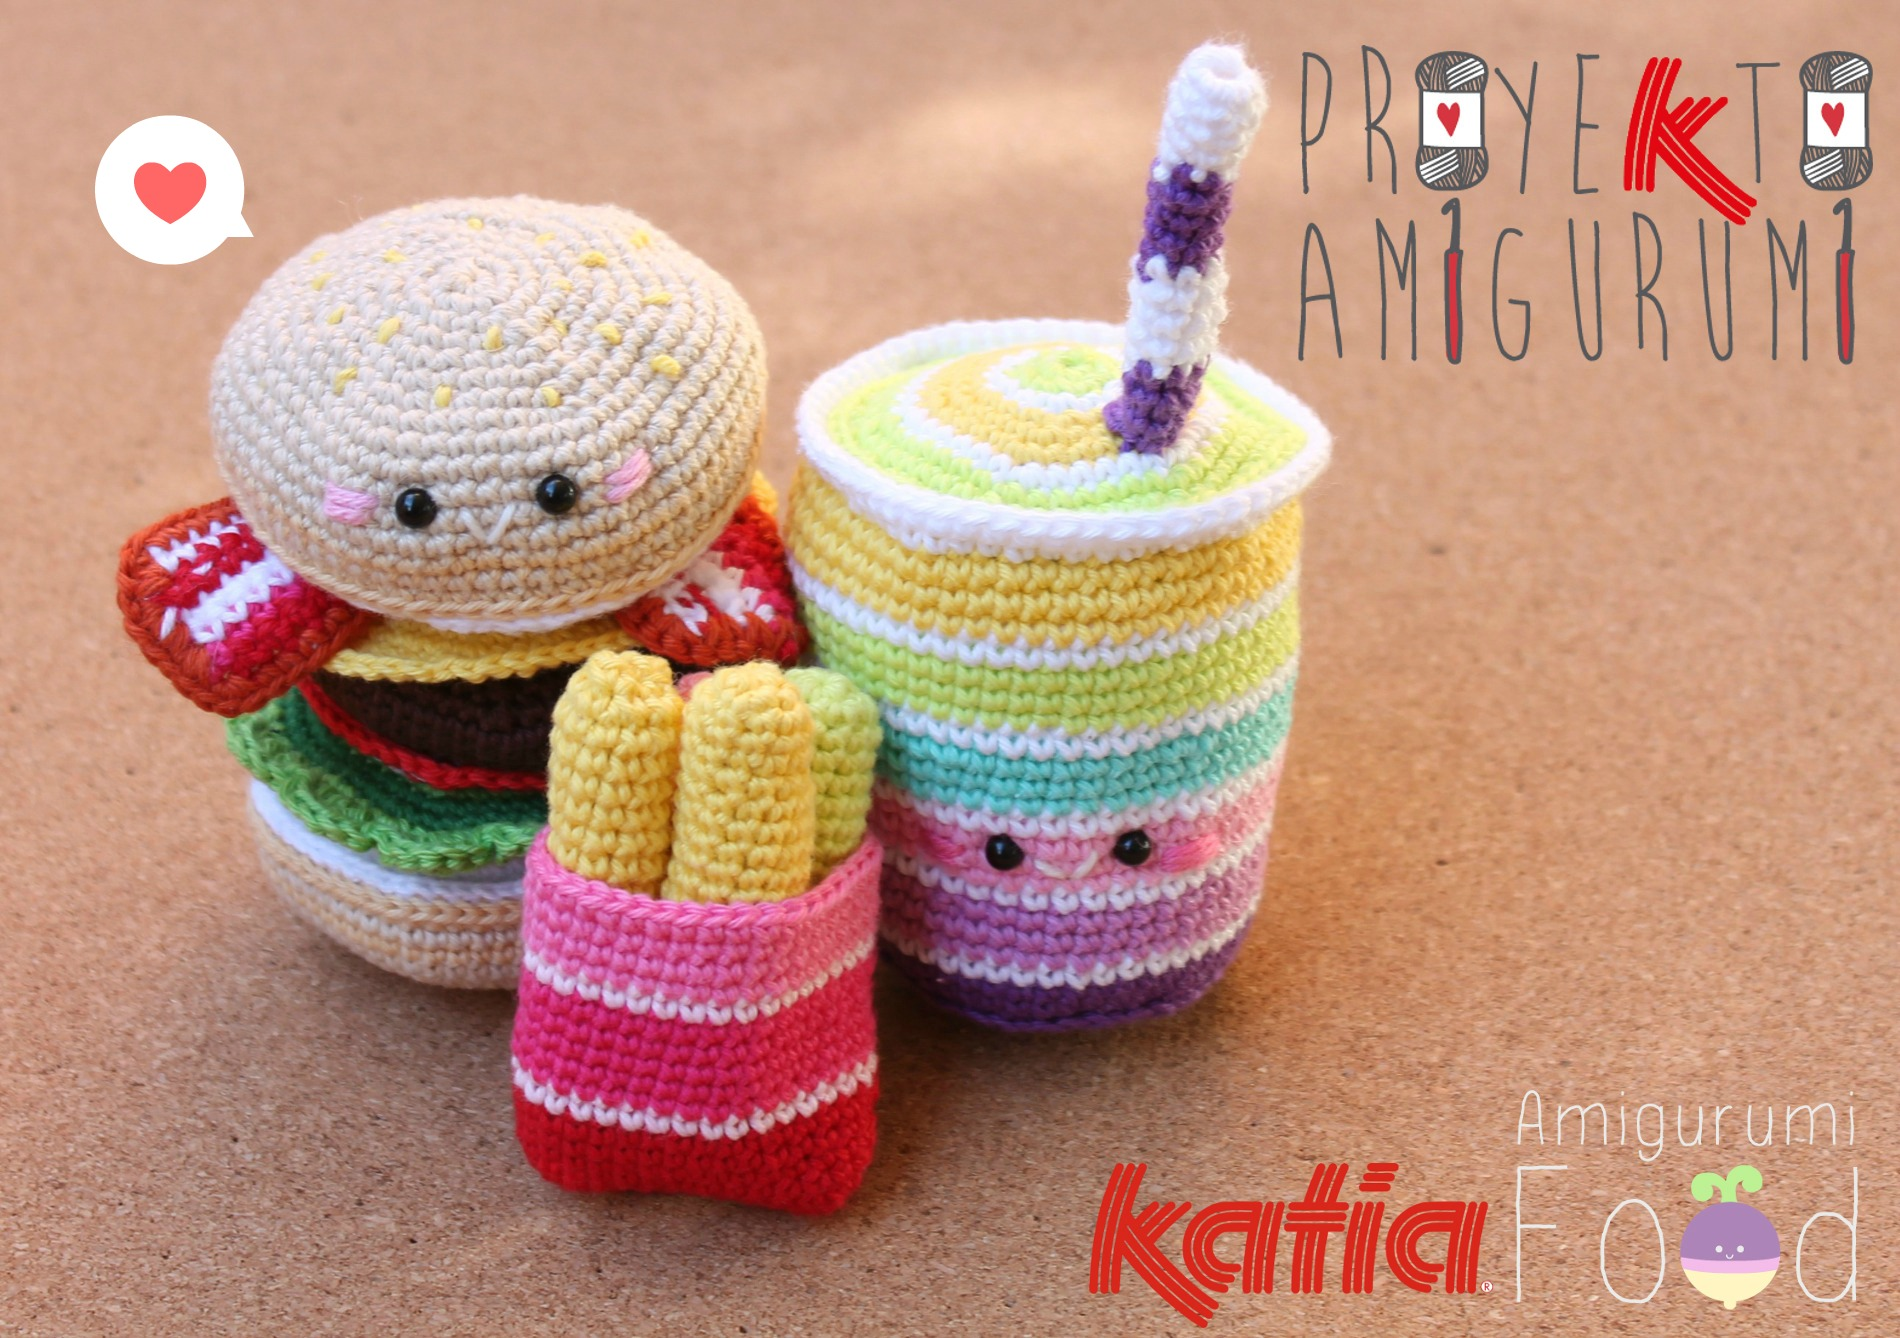 44 Awesome Crochet Amigurumi For You Kids for 2019 - Page 24 of 44 ...   1338x1900